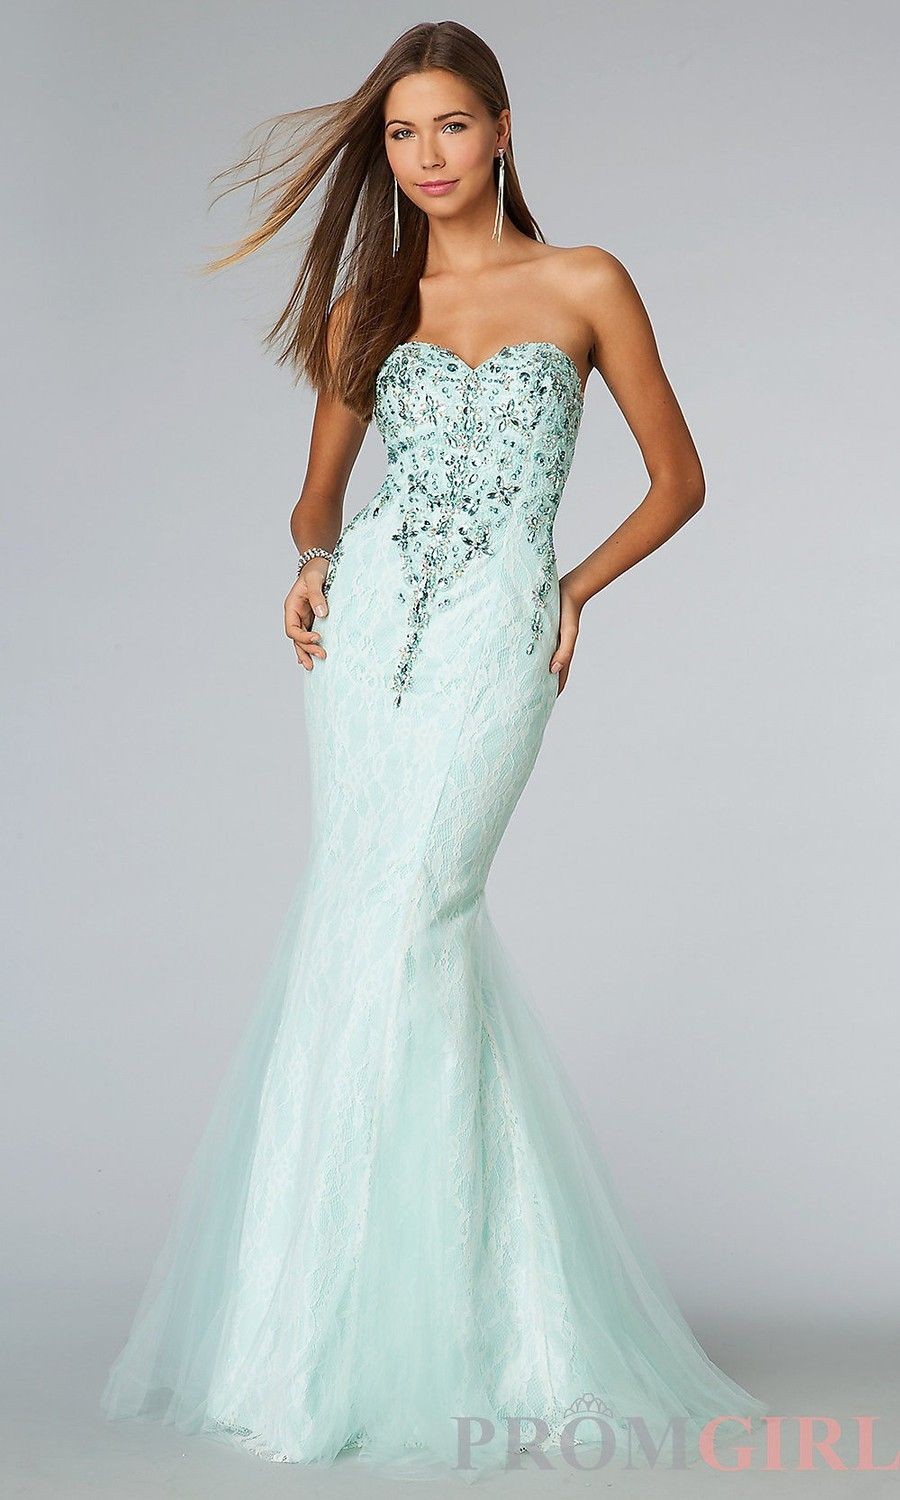 Cheap gown dress, Buy Quality dress rentals directly from China gown ...